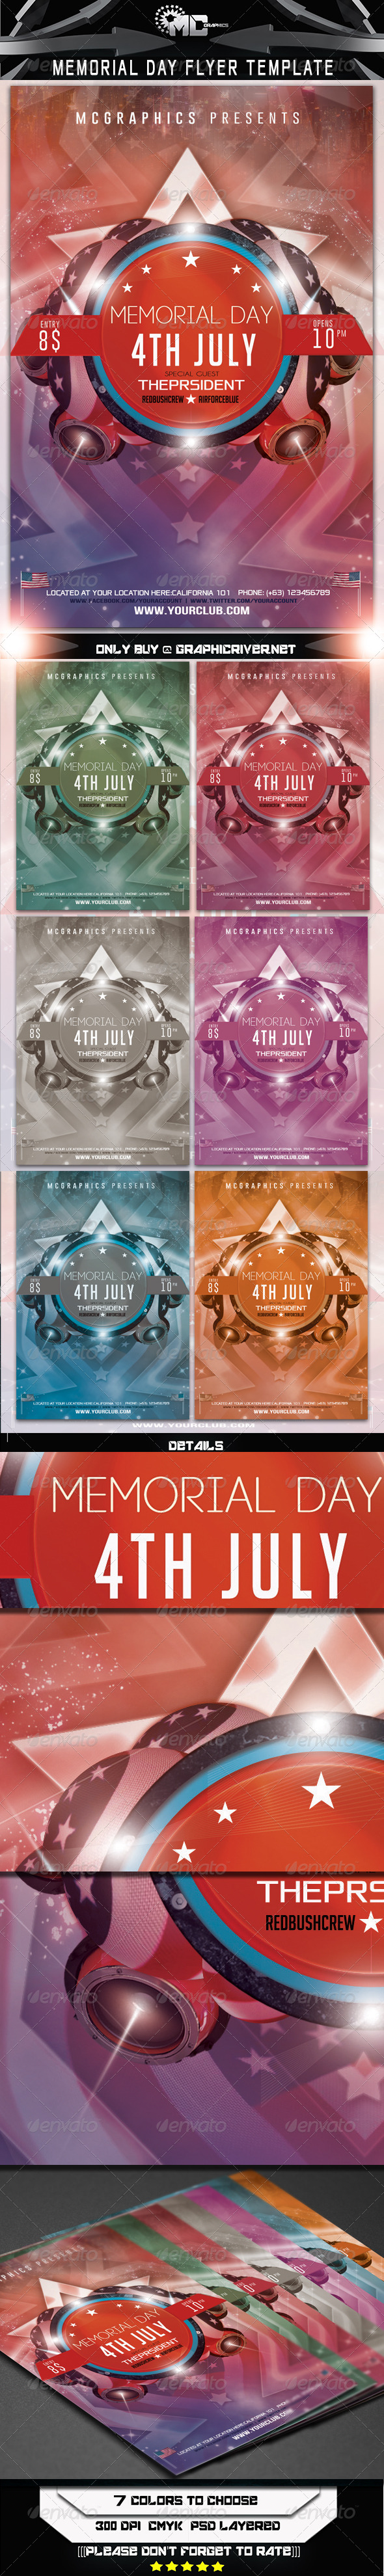 Memorial Day Flyer Template - Flyers Print Templates